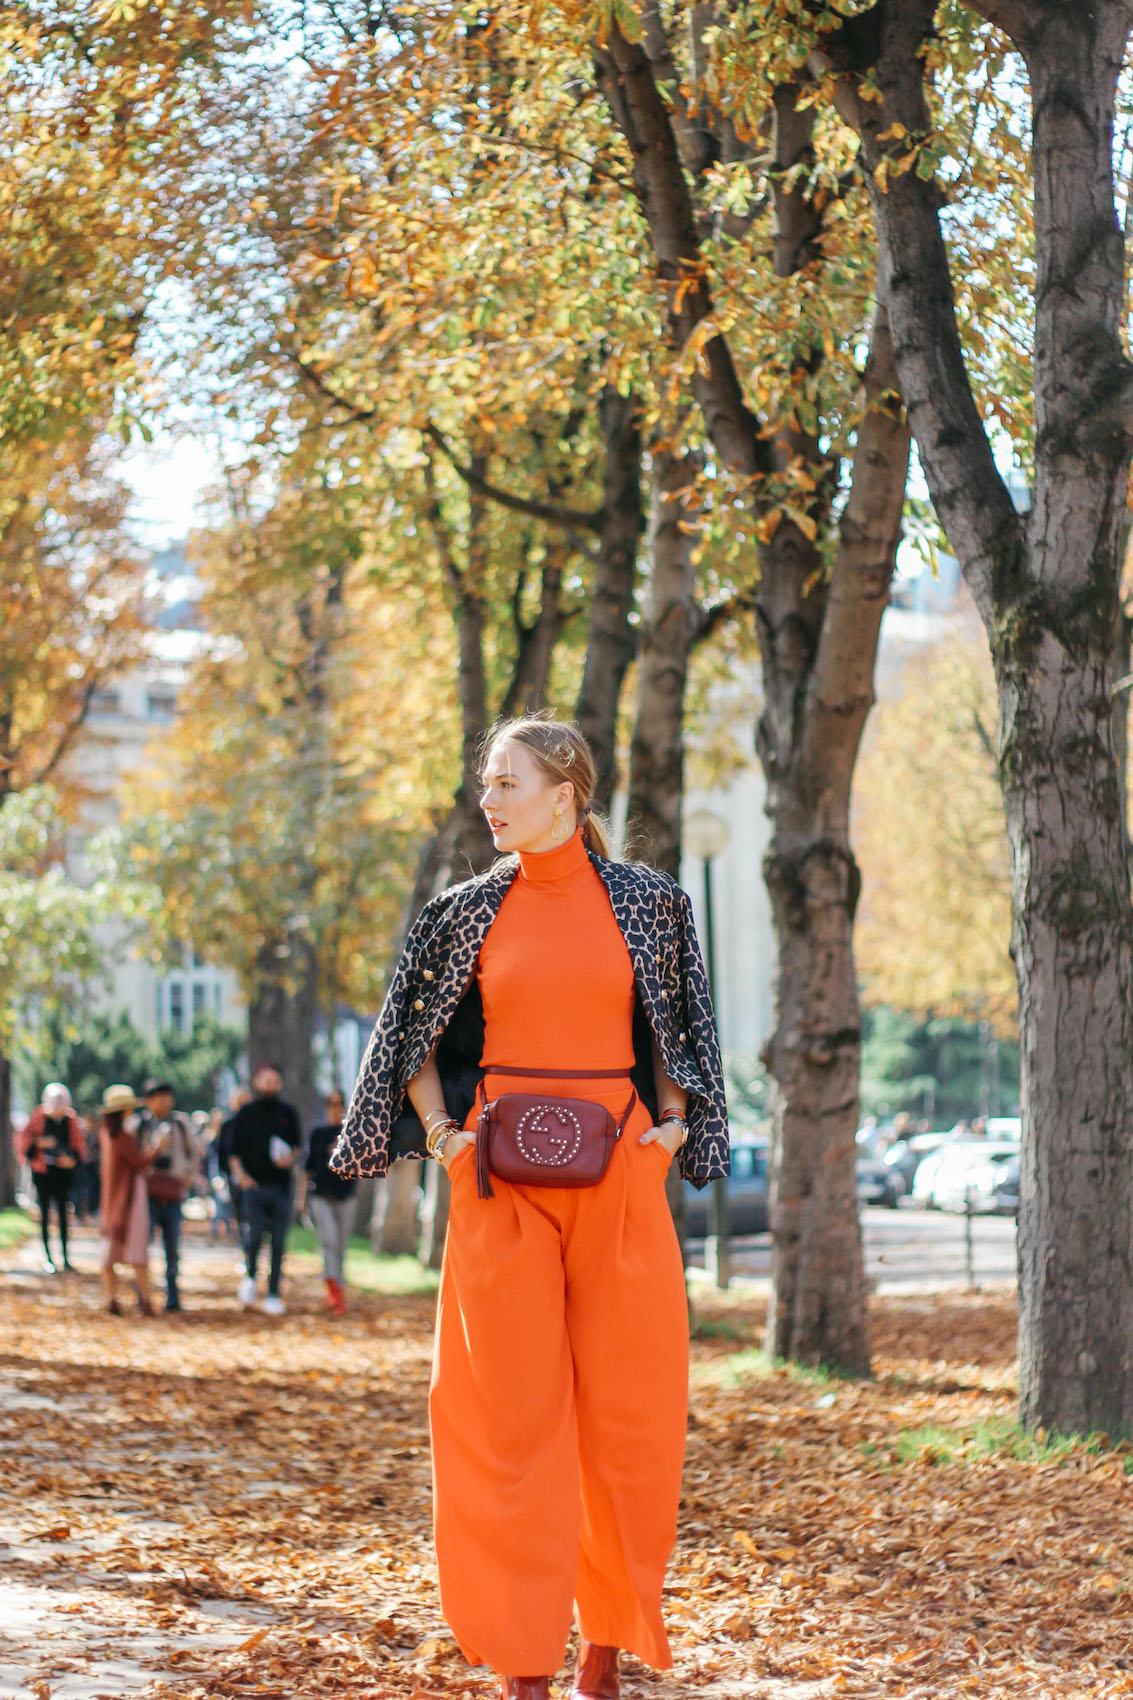 Floortjeloves, pfw, paris, paris fashionweek, paris fashion week, fashionweek, fashion week, river island, SUIStudio, Gucci, Zara, asos, issey miyake, show